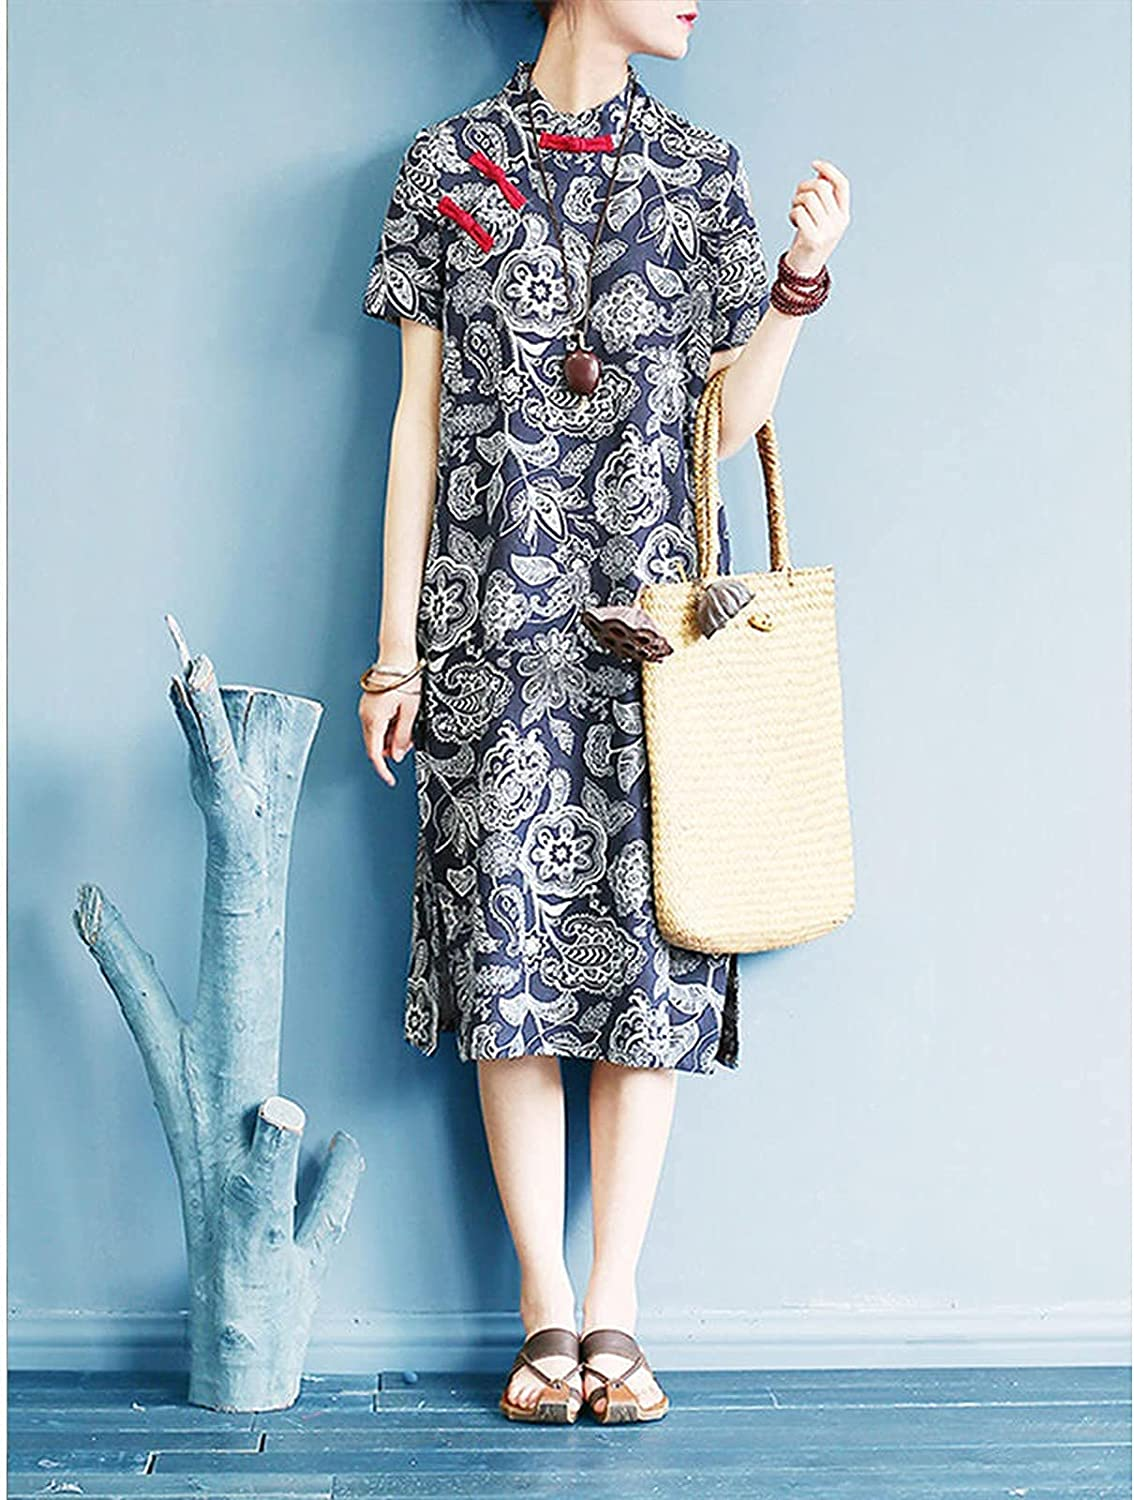 LUXMAX Beautiful Women's Dress is Cool and Comfortable in Summer. It's A Slim and Retro Printed Button Dress. It's Suitable for Any Time - A Fashionable and Simple Women's Top(Size:Large,Color:A)